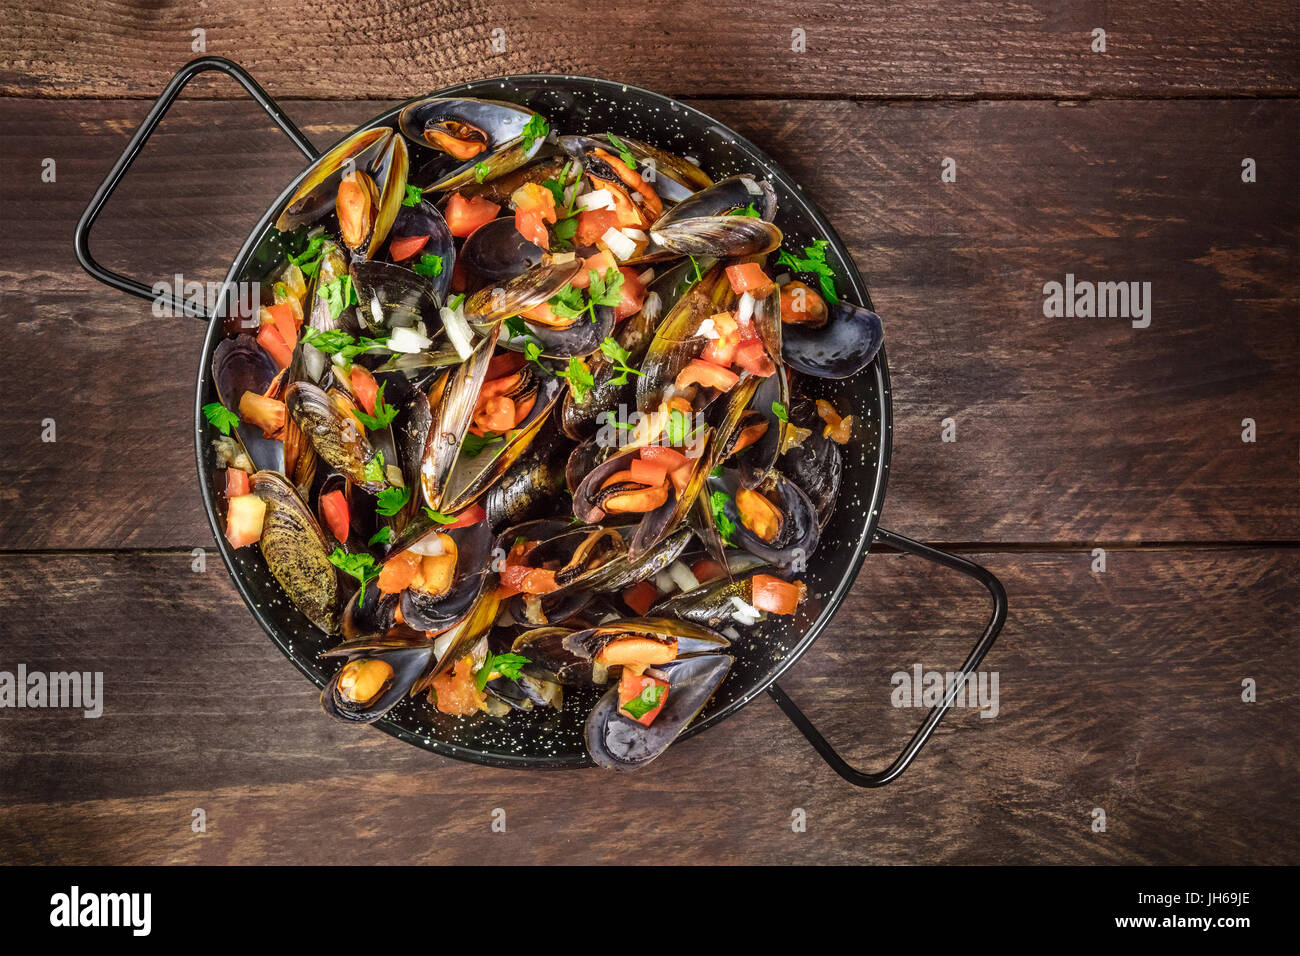 Skillet of marinara mussels on rustic background with copyspace Stock Photo